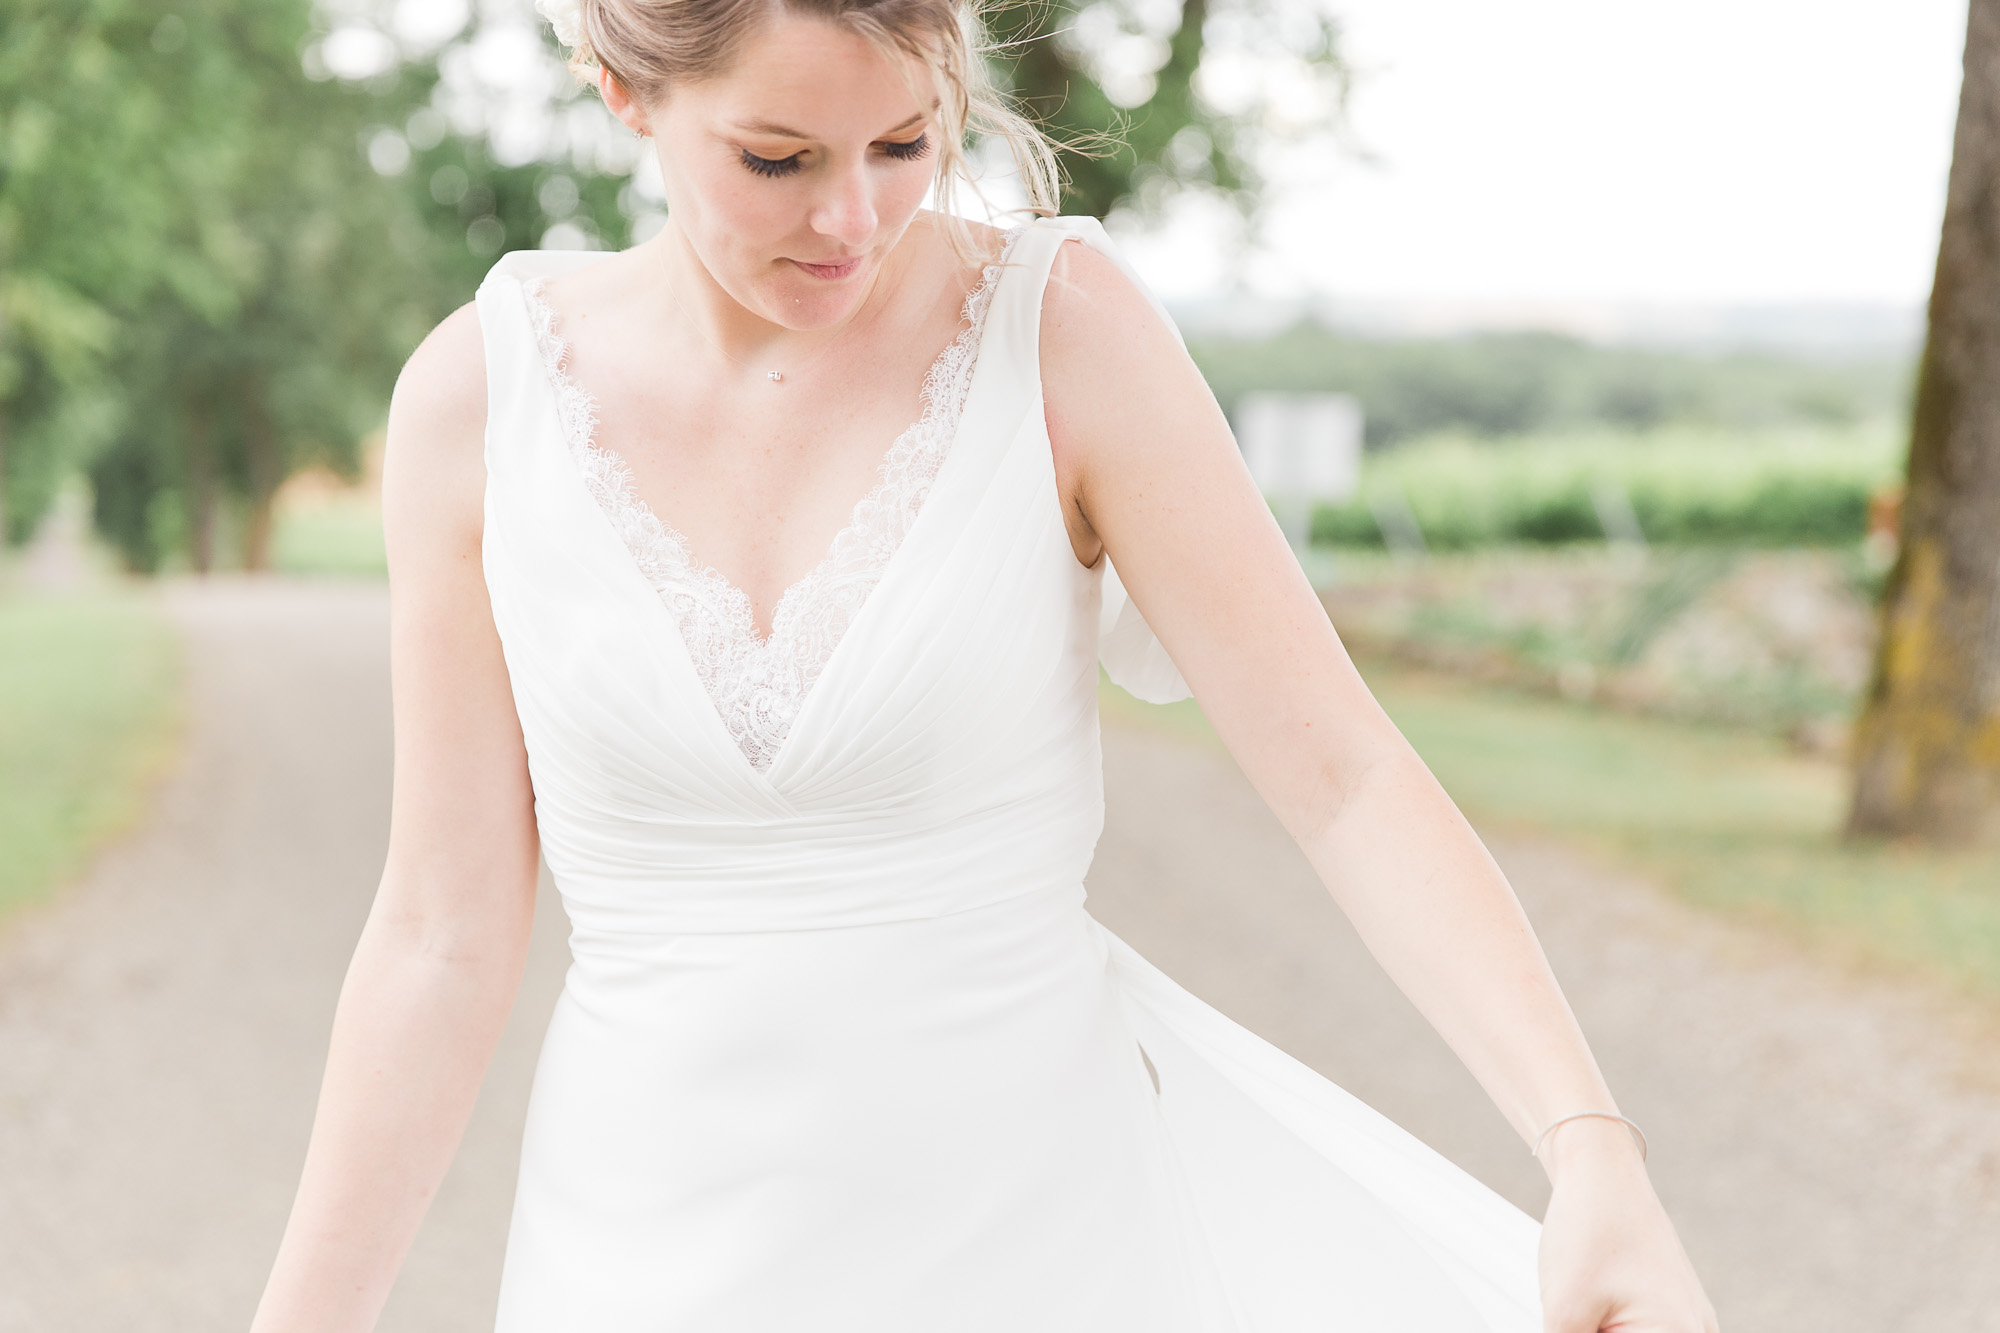 photographe-mariage-toulouse-gers-lucile-vives-4